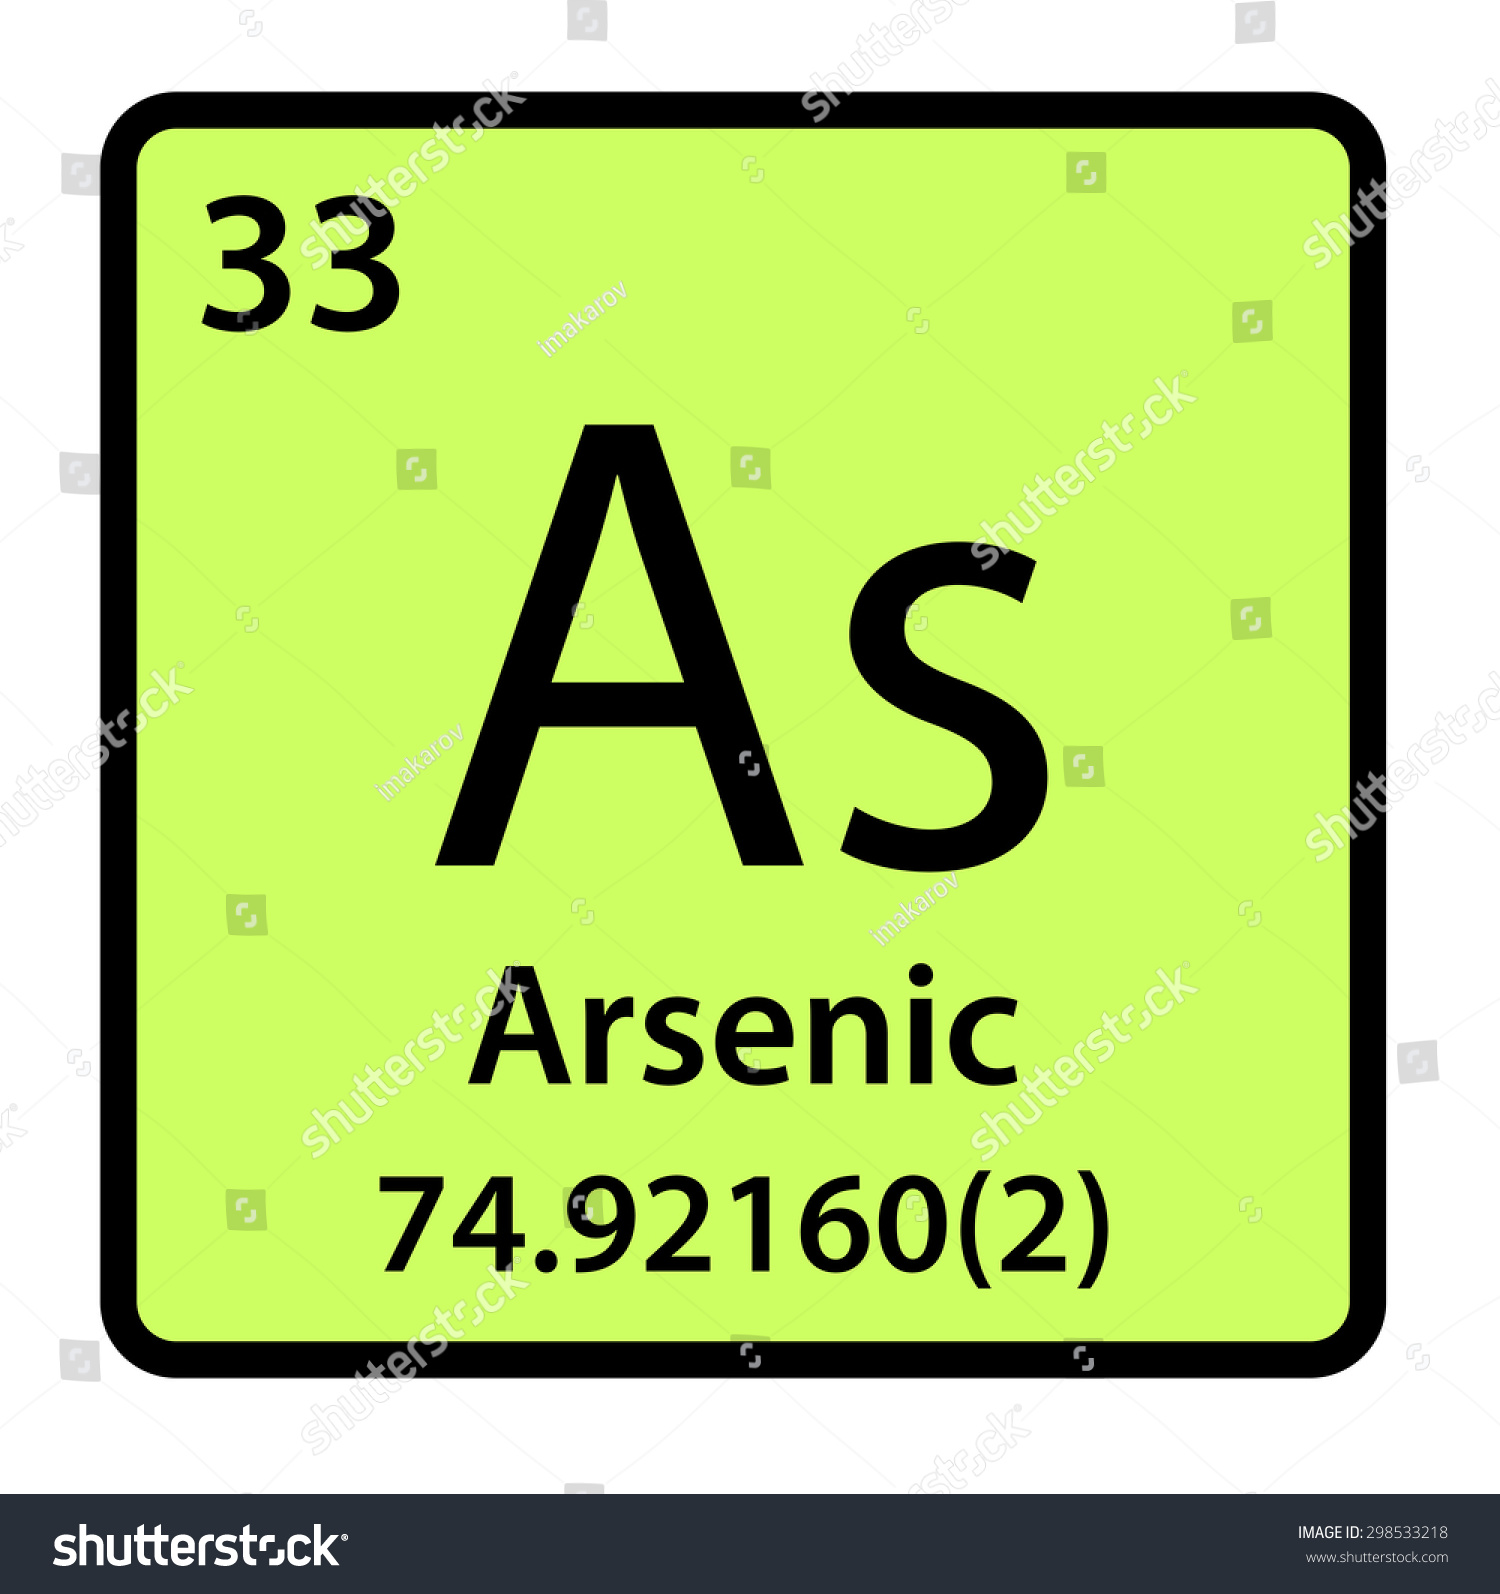 Element arsenic periodic table stock illustration 298533218 element arsenic of the periodic table biocorpaavc Image collections